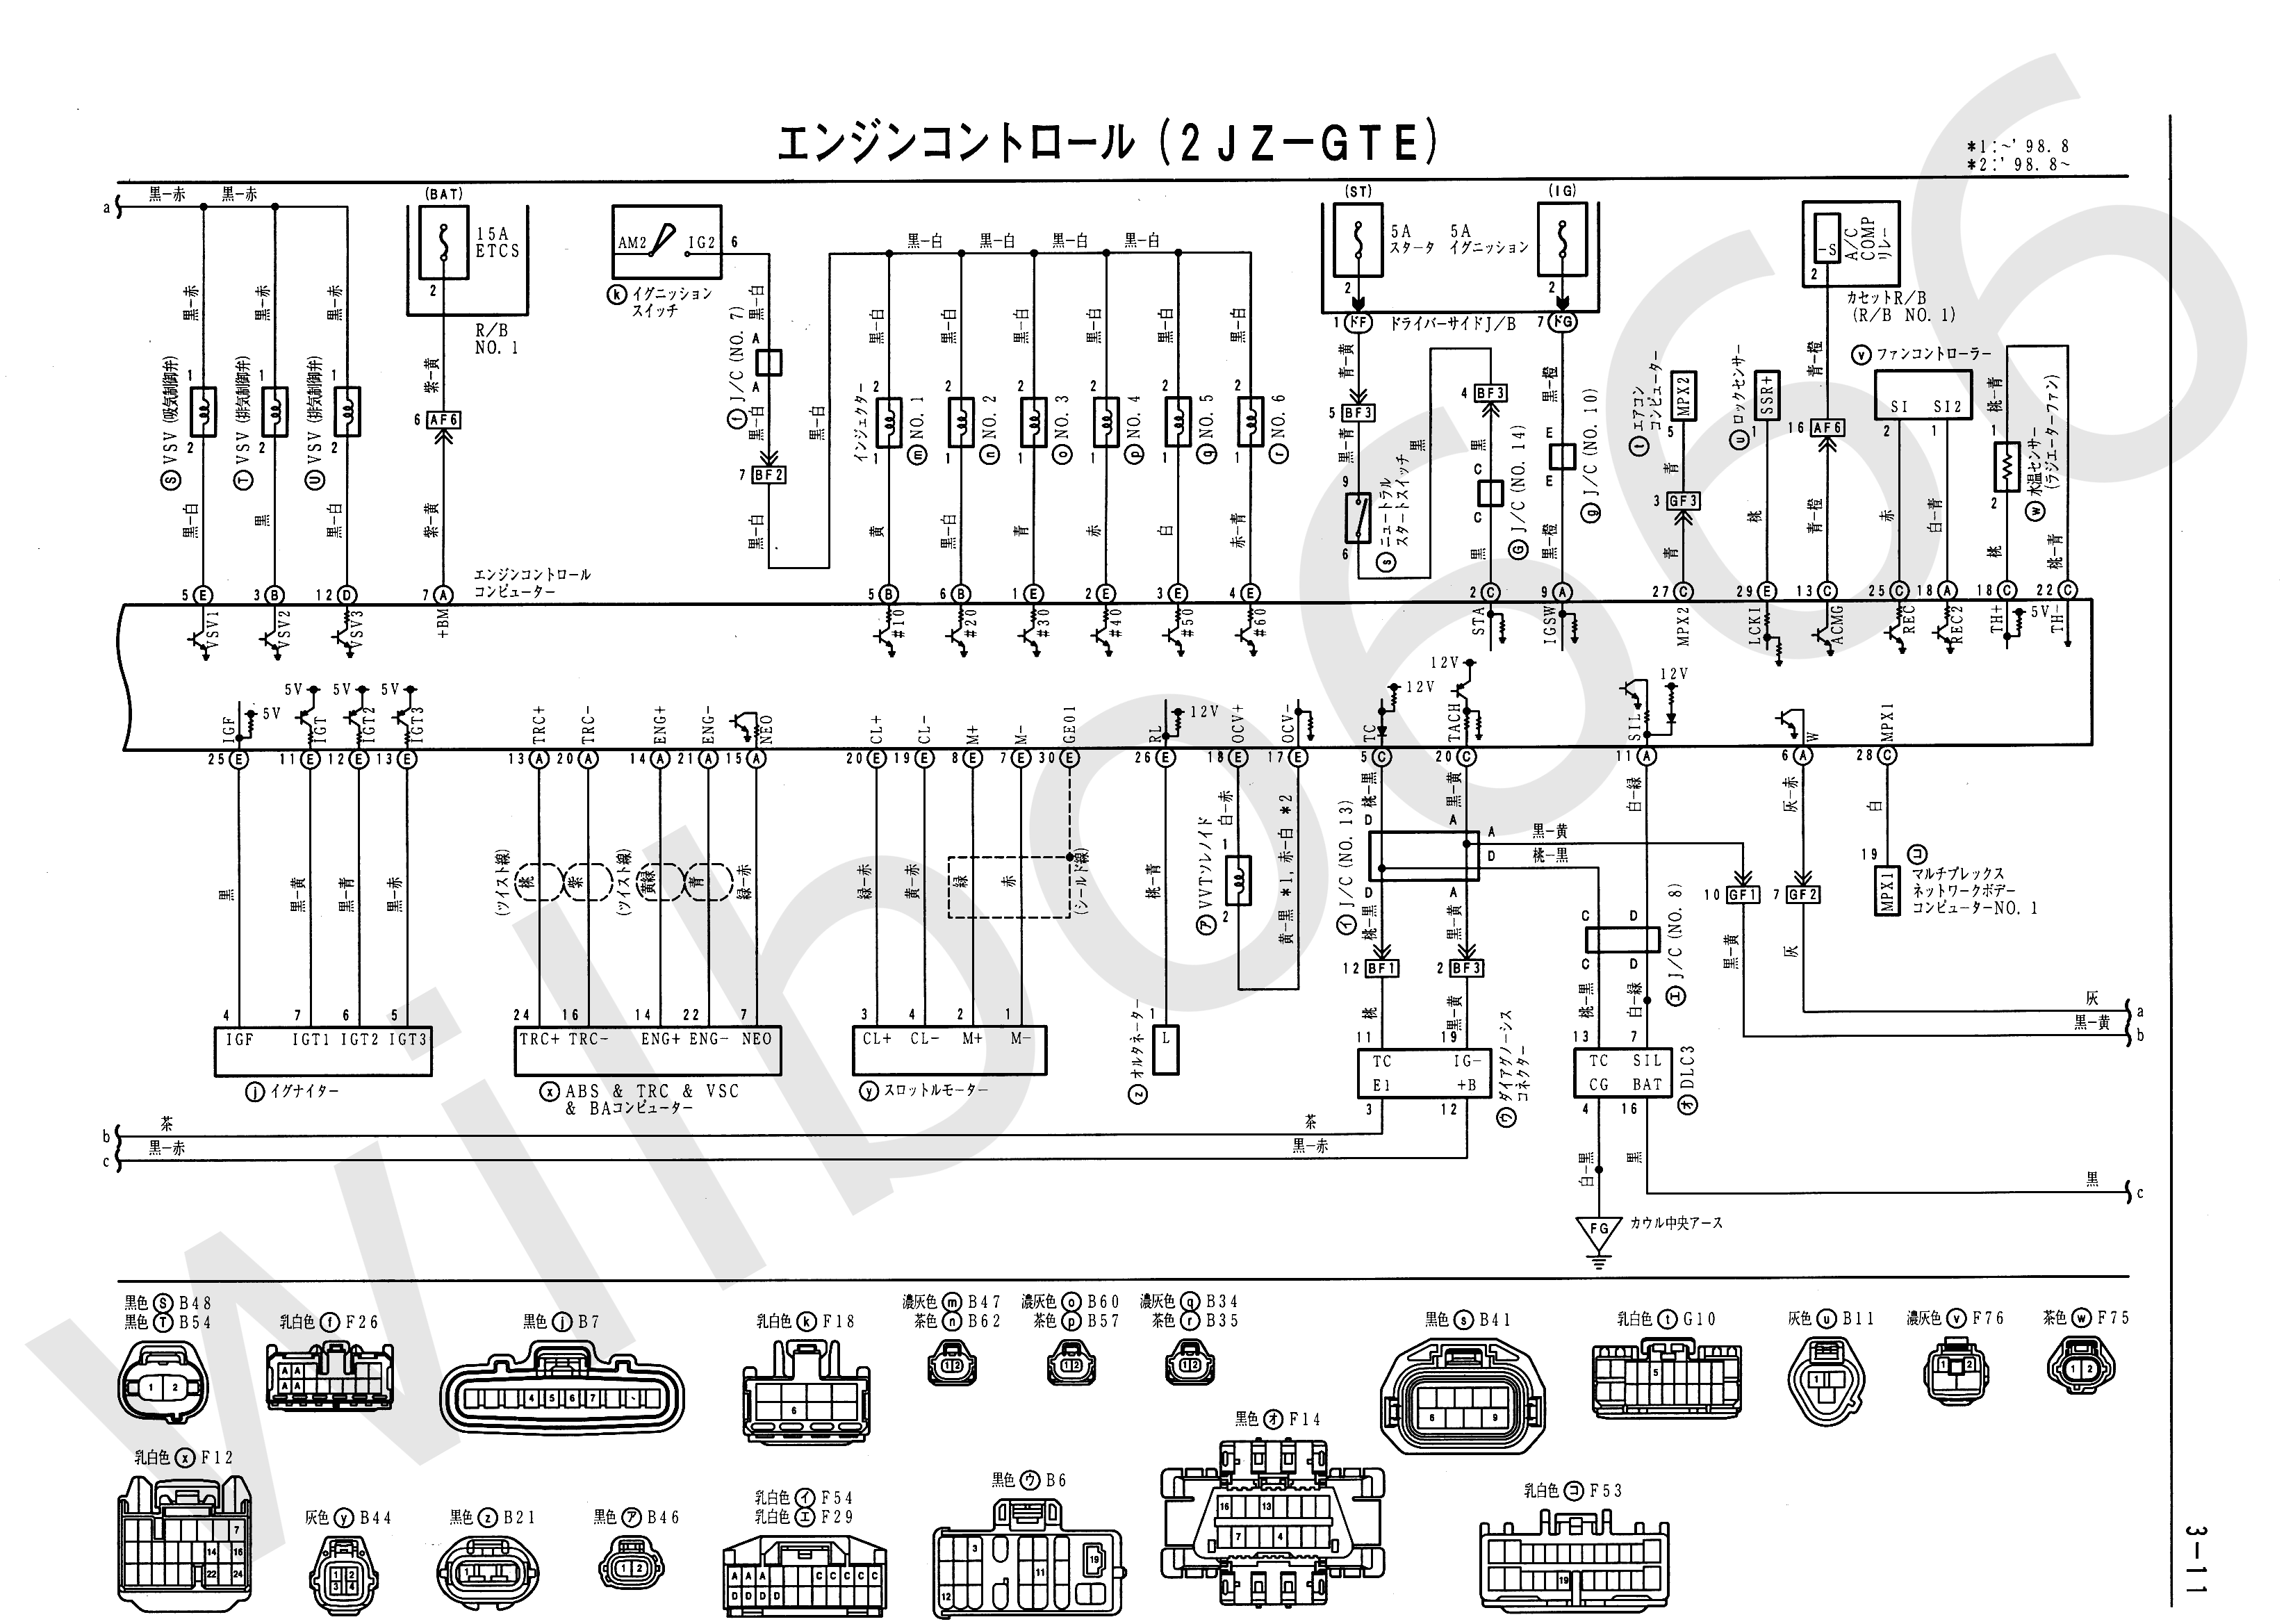 JZS161 Electrical Wiring Diagram 6748505 3 11 2jz wiring diagram 2jz wiring diagrams instruction  at honlapkeszites.co